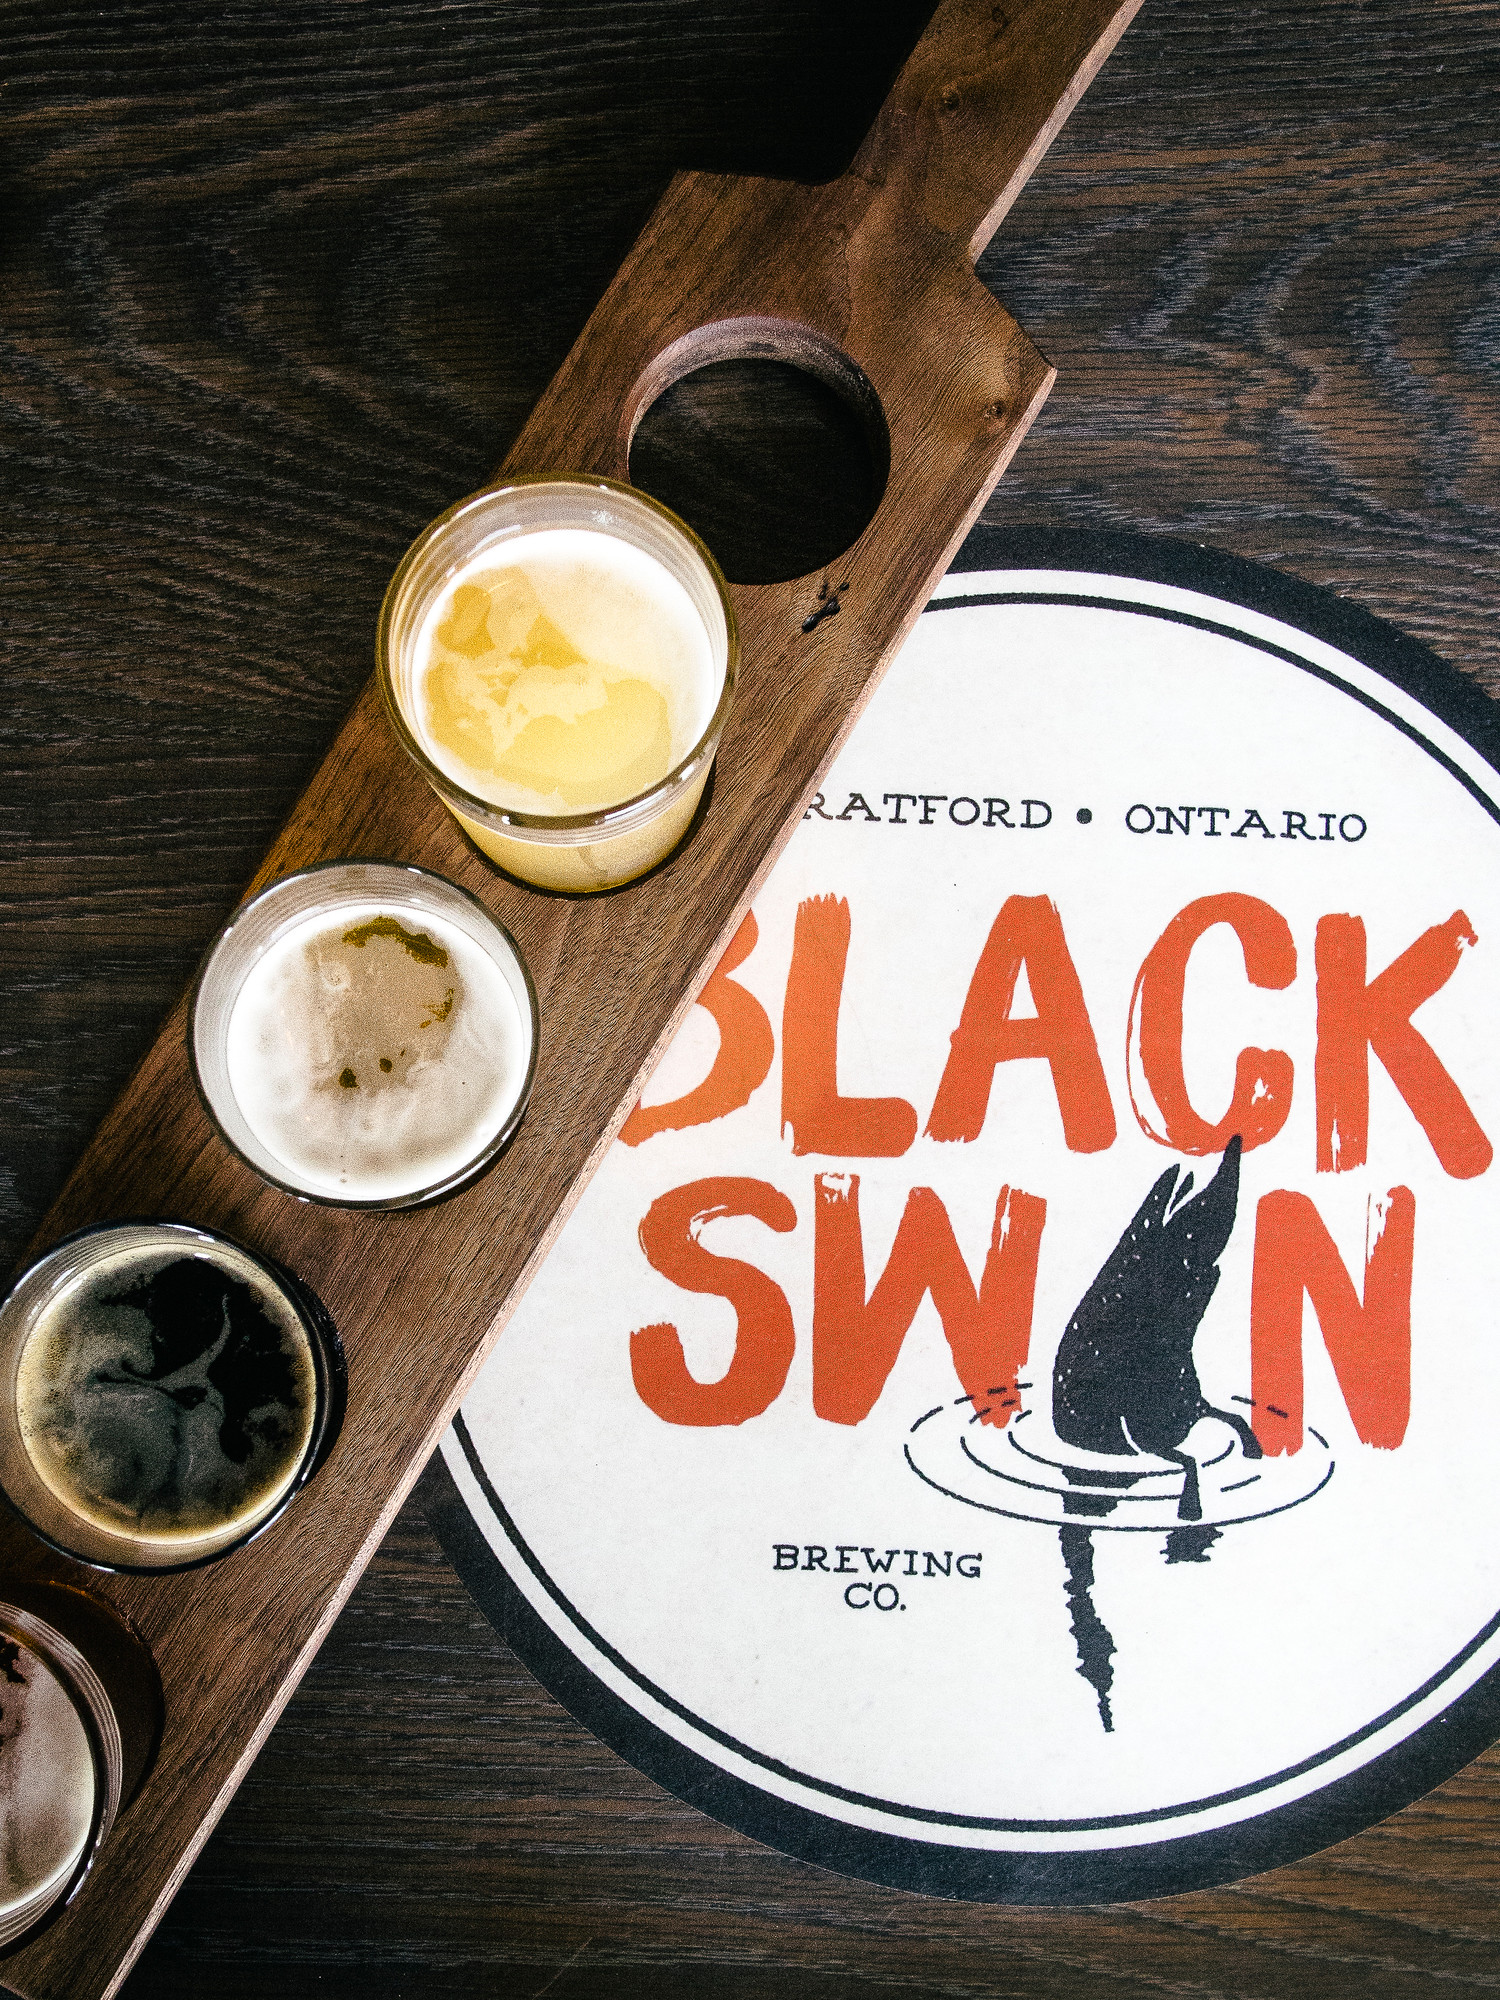 The Stratford bacon and ale trail includes great breweries like Black Swan located downtown Stratford.